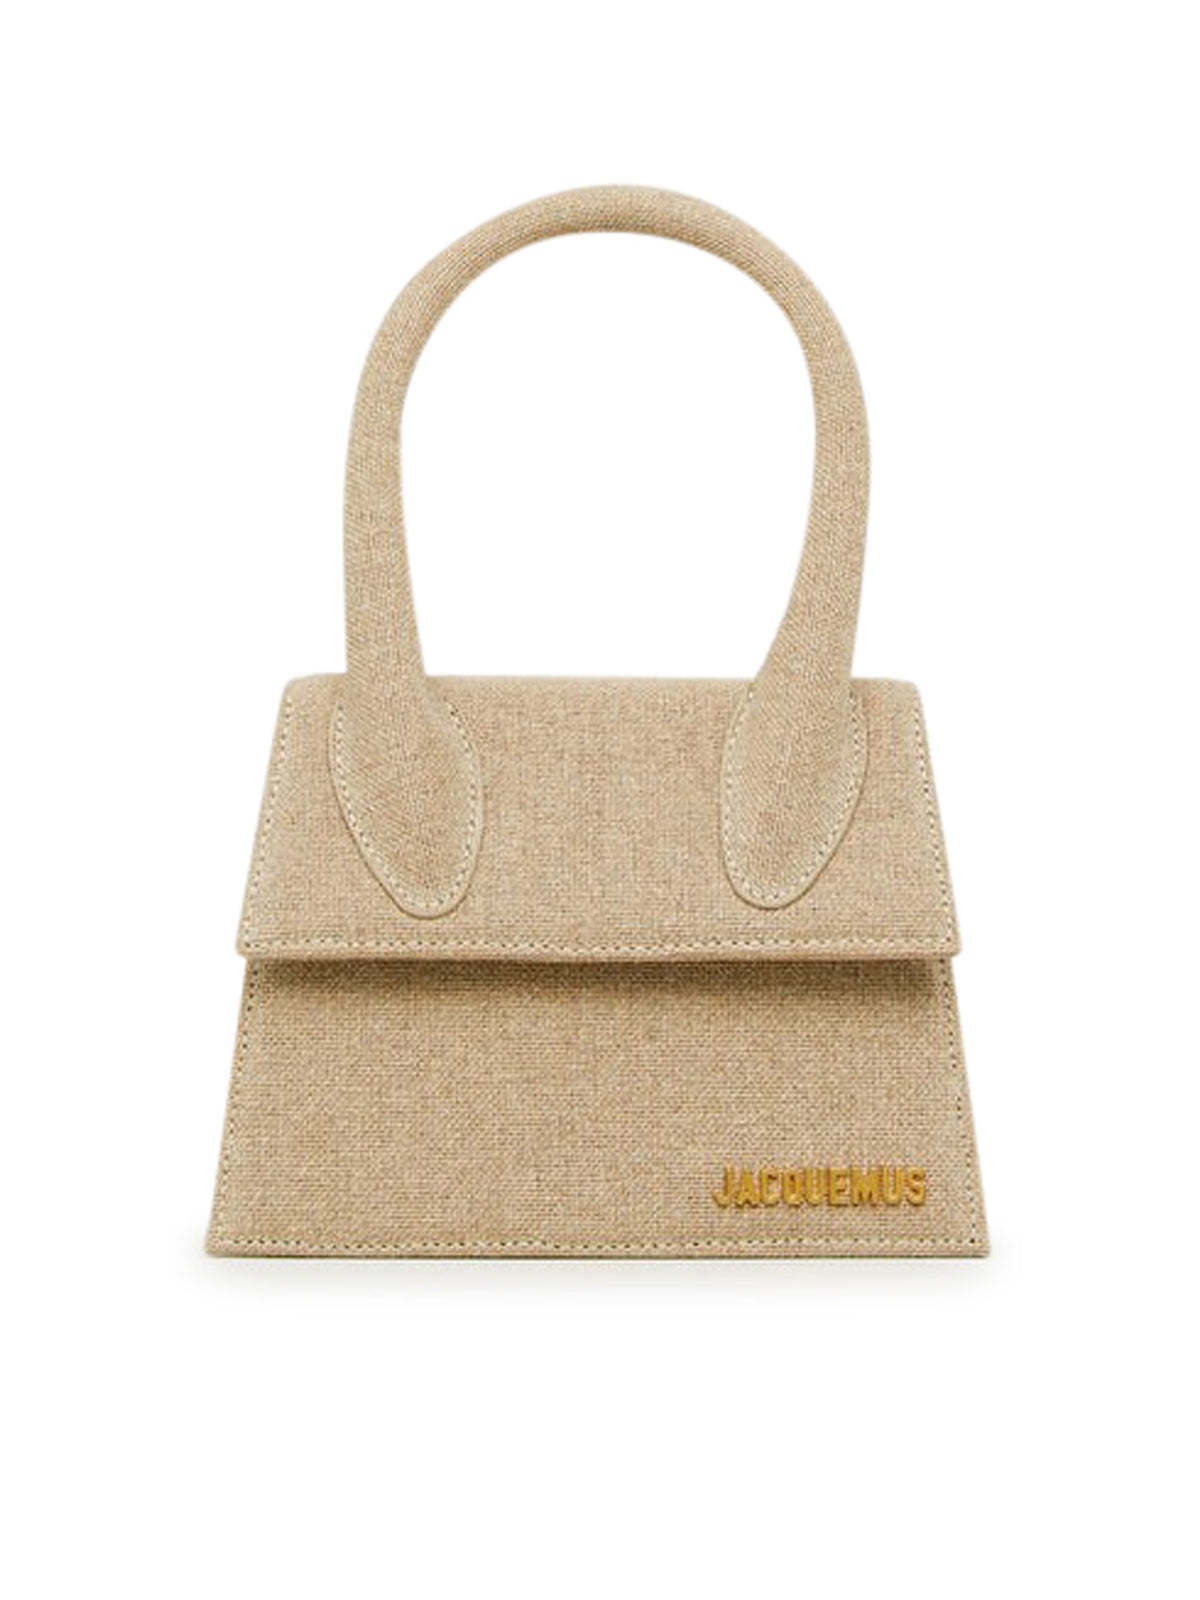 Le Chiquito moyen top-handle bag